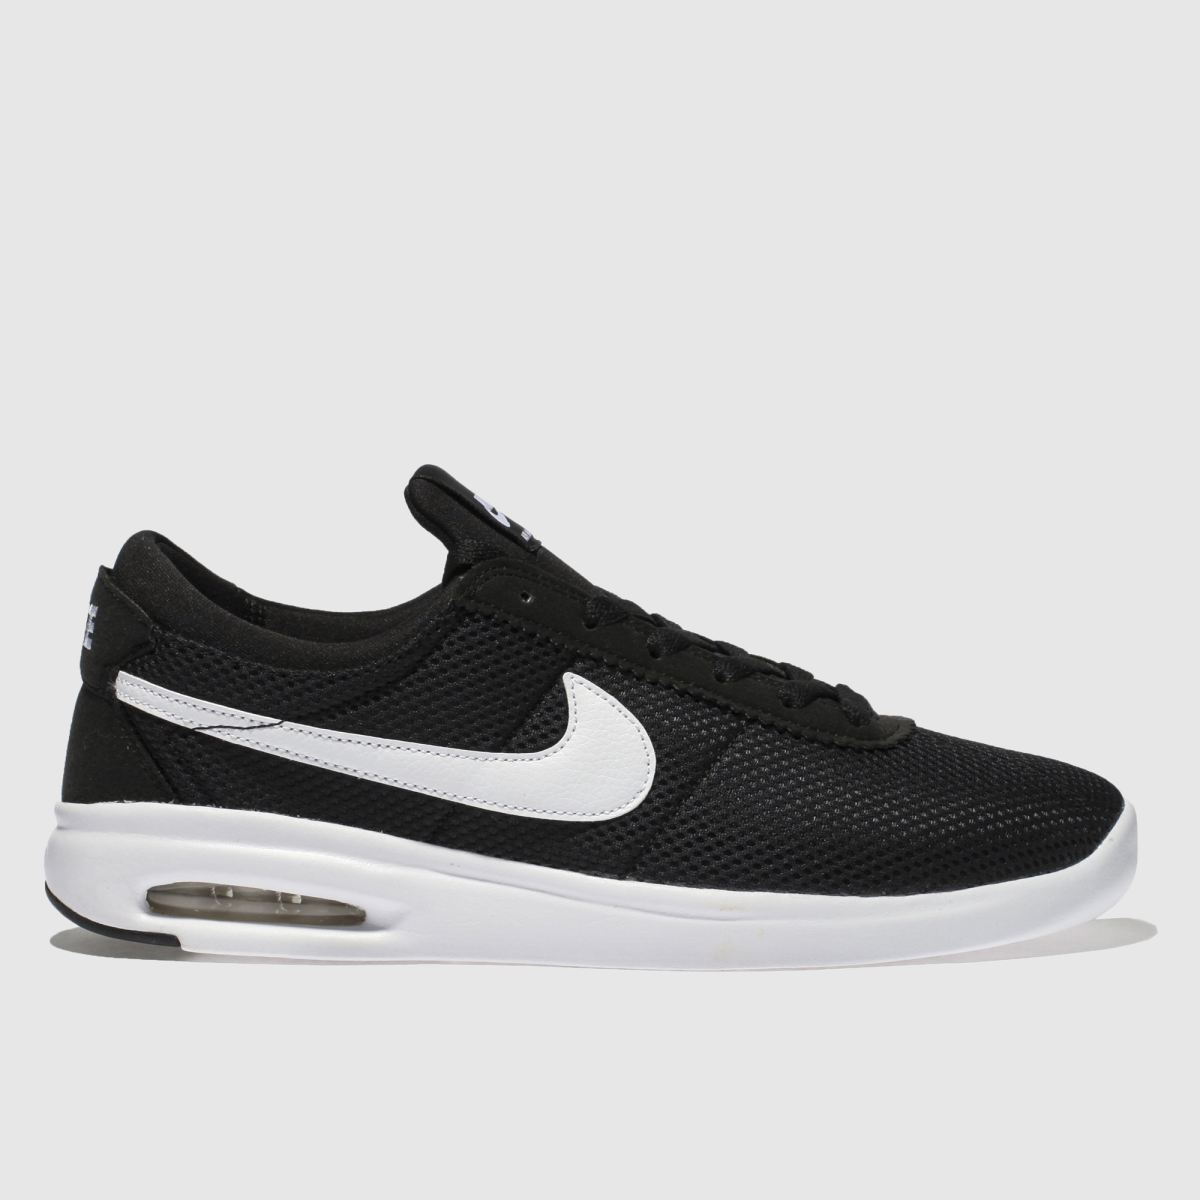 Nike Sb Black & White Air Max Bruin Vapor Trainers